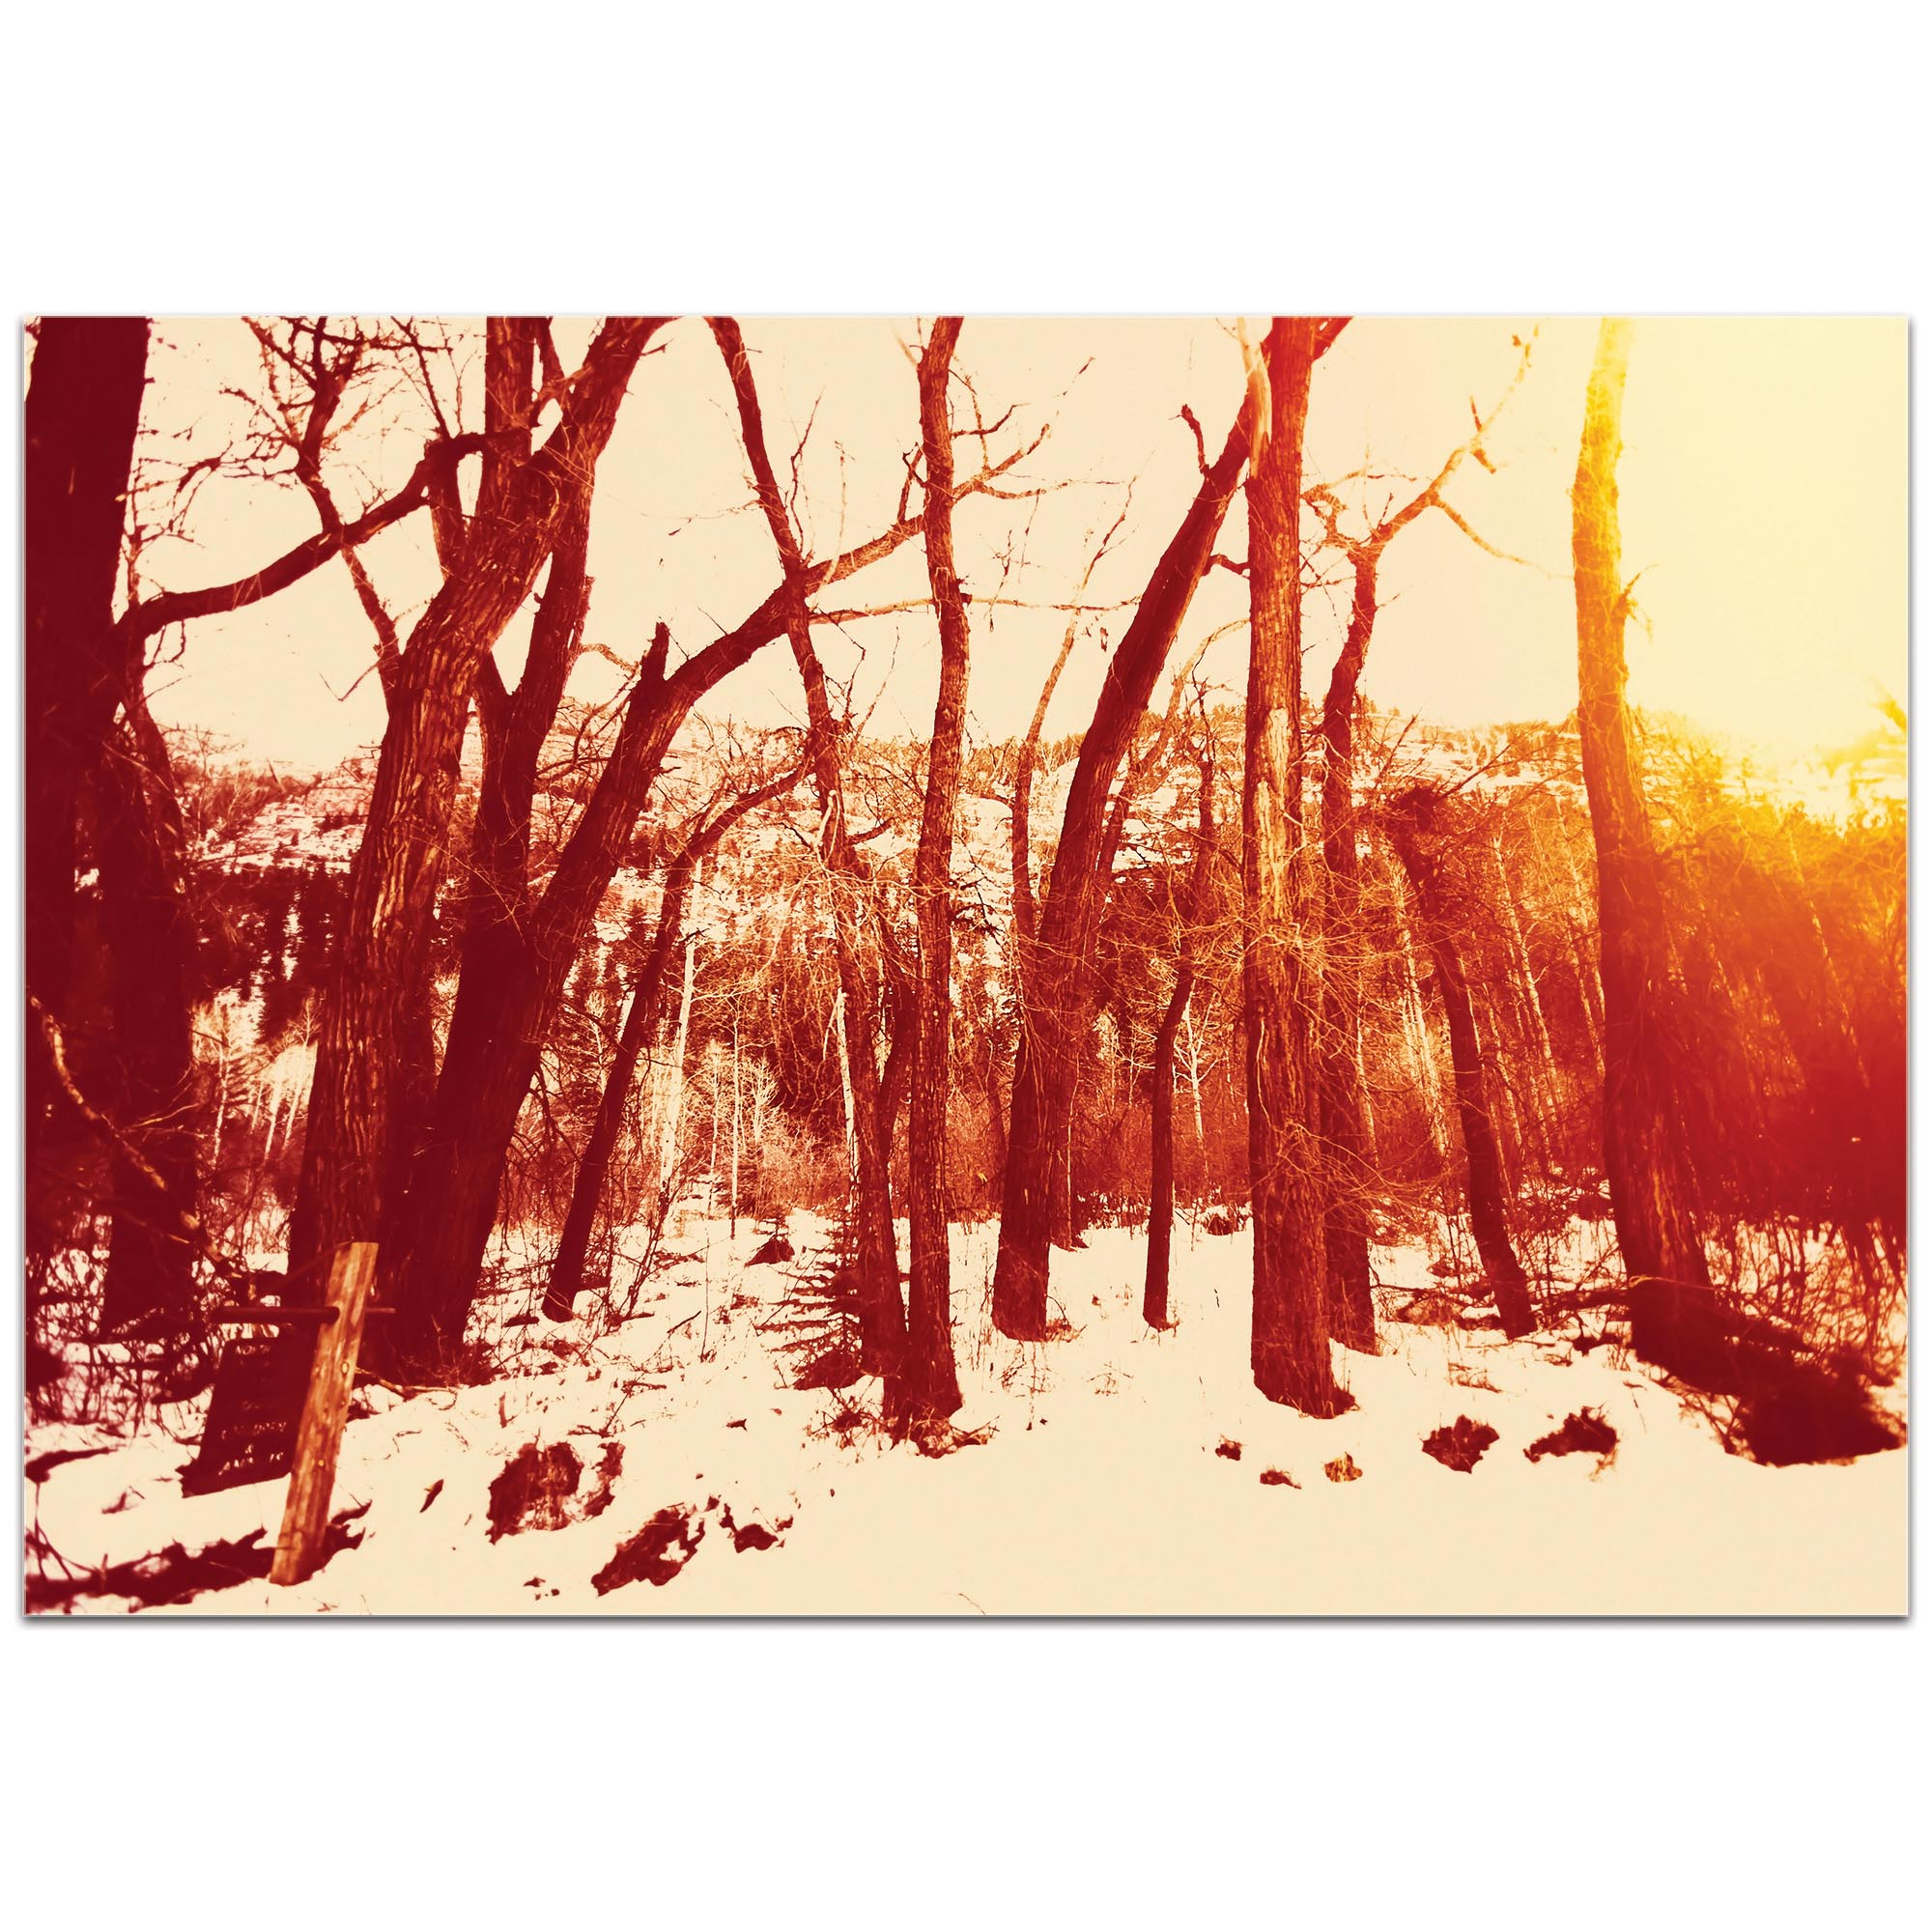 Landscape Photography 'Sepia Snowfall' - Winter Trees Art on Metal or Plexiglass - Image 2